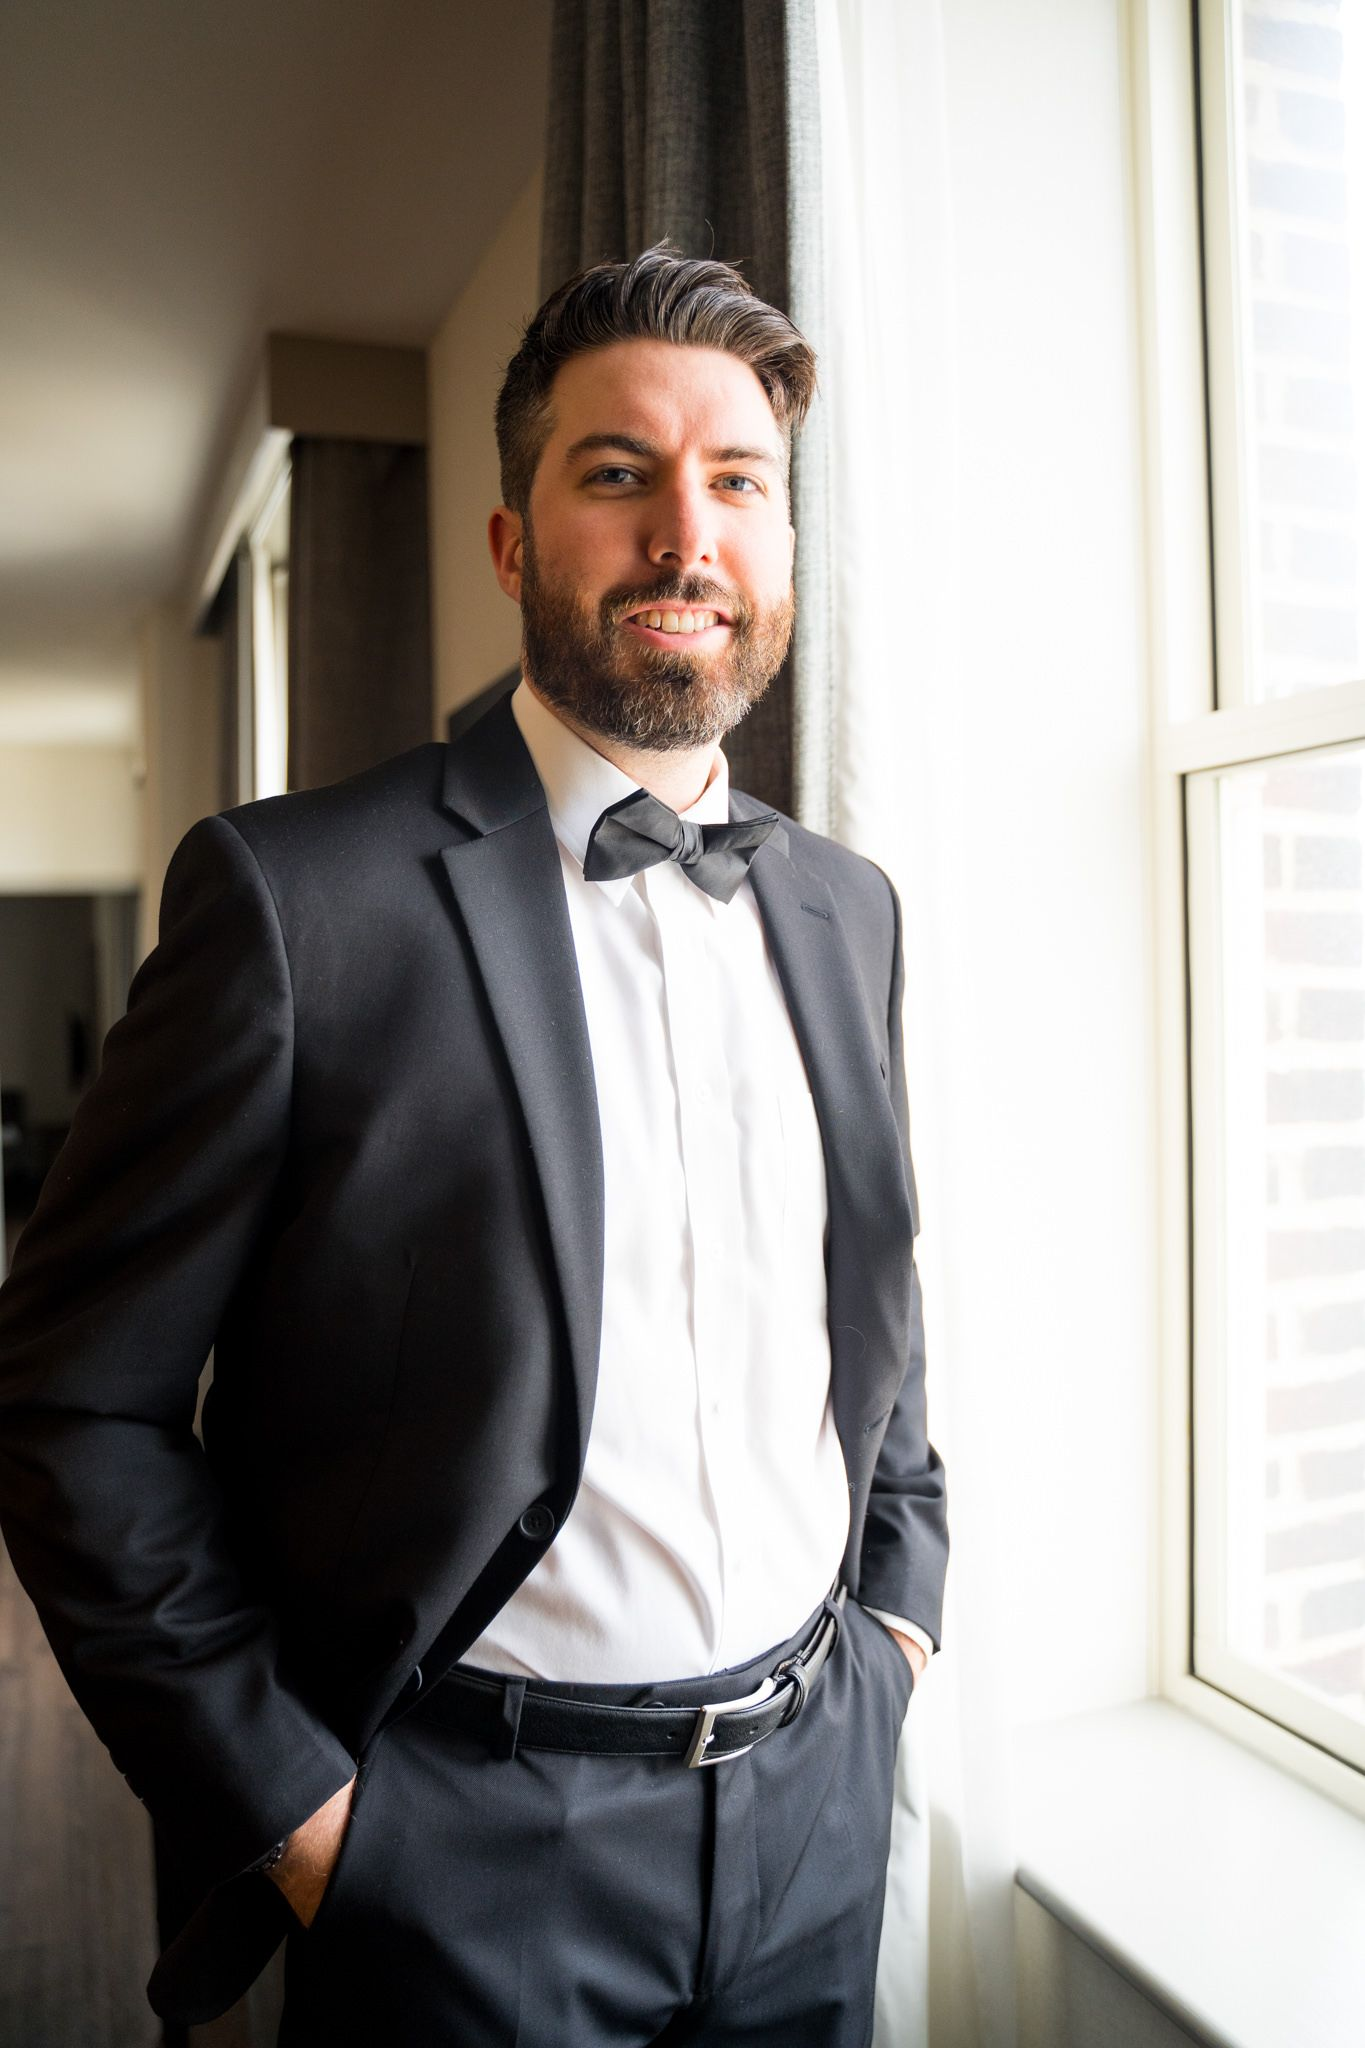 brunette groom with beard in black suit and bowtie smiling next to window in for downtown St. Louis wedding